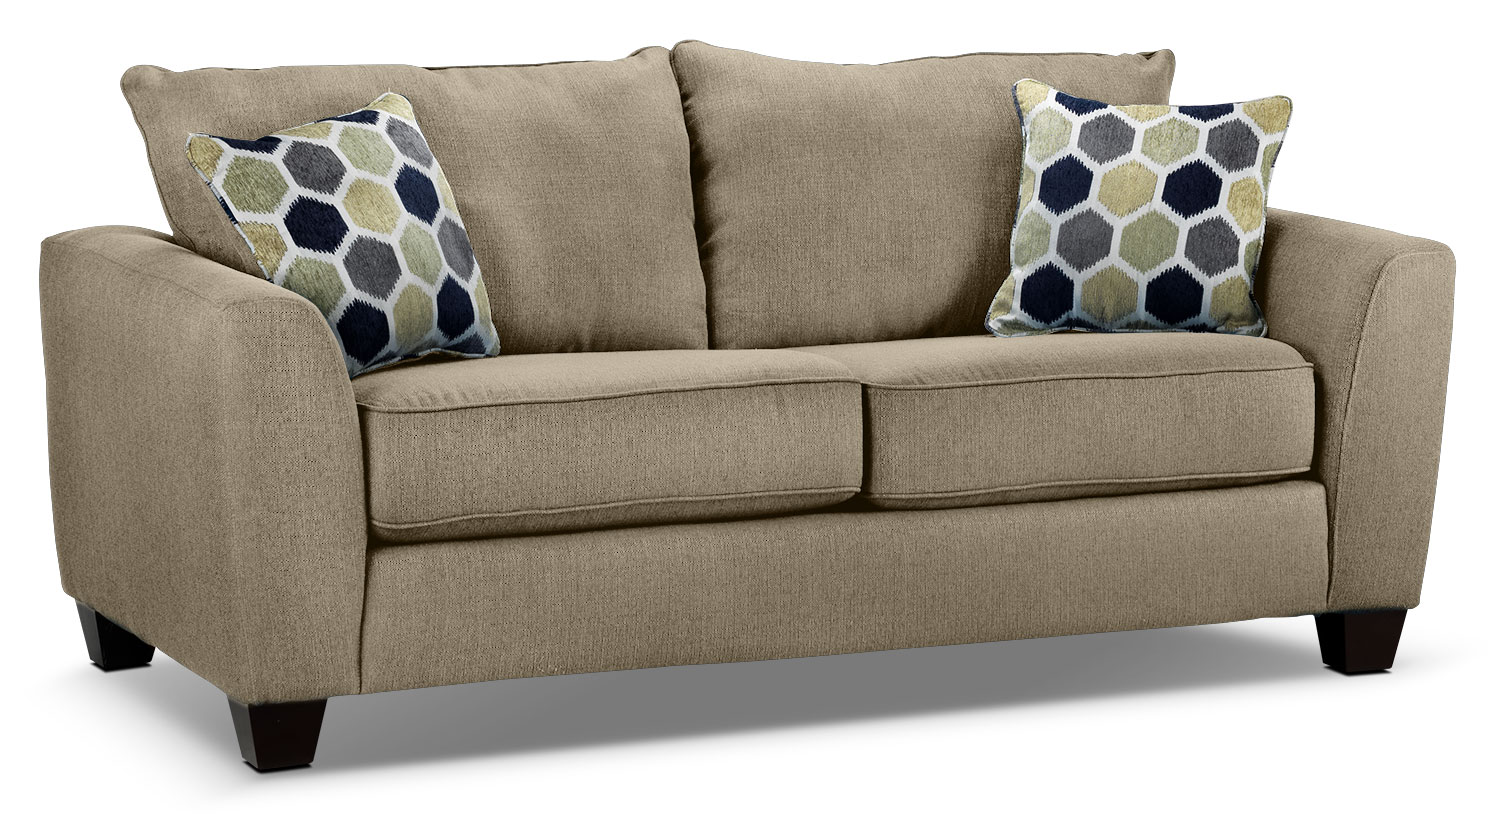 Living Room Furniture - Heritage Loveseat - Beige